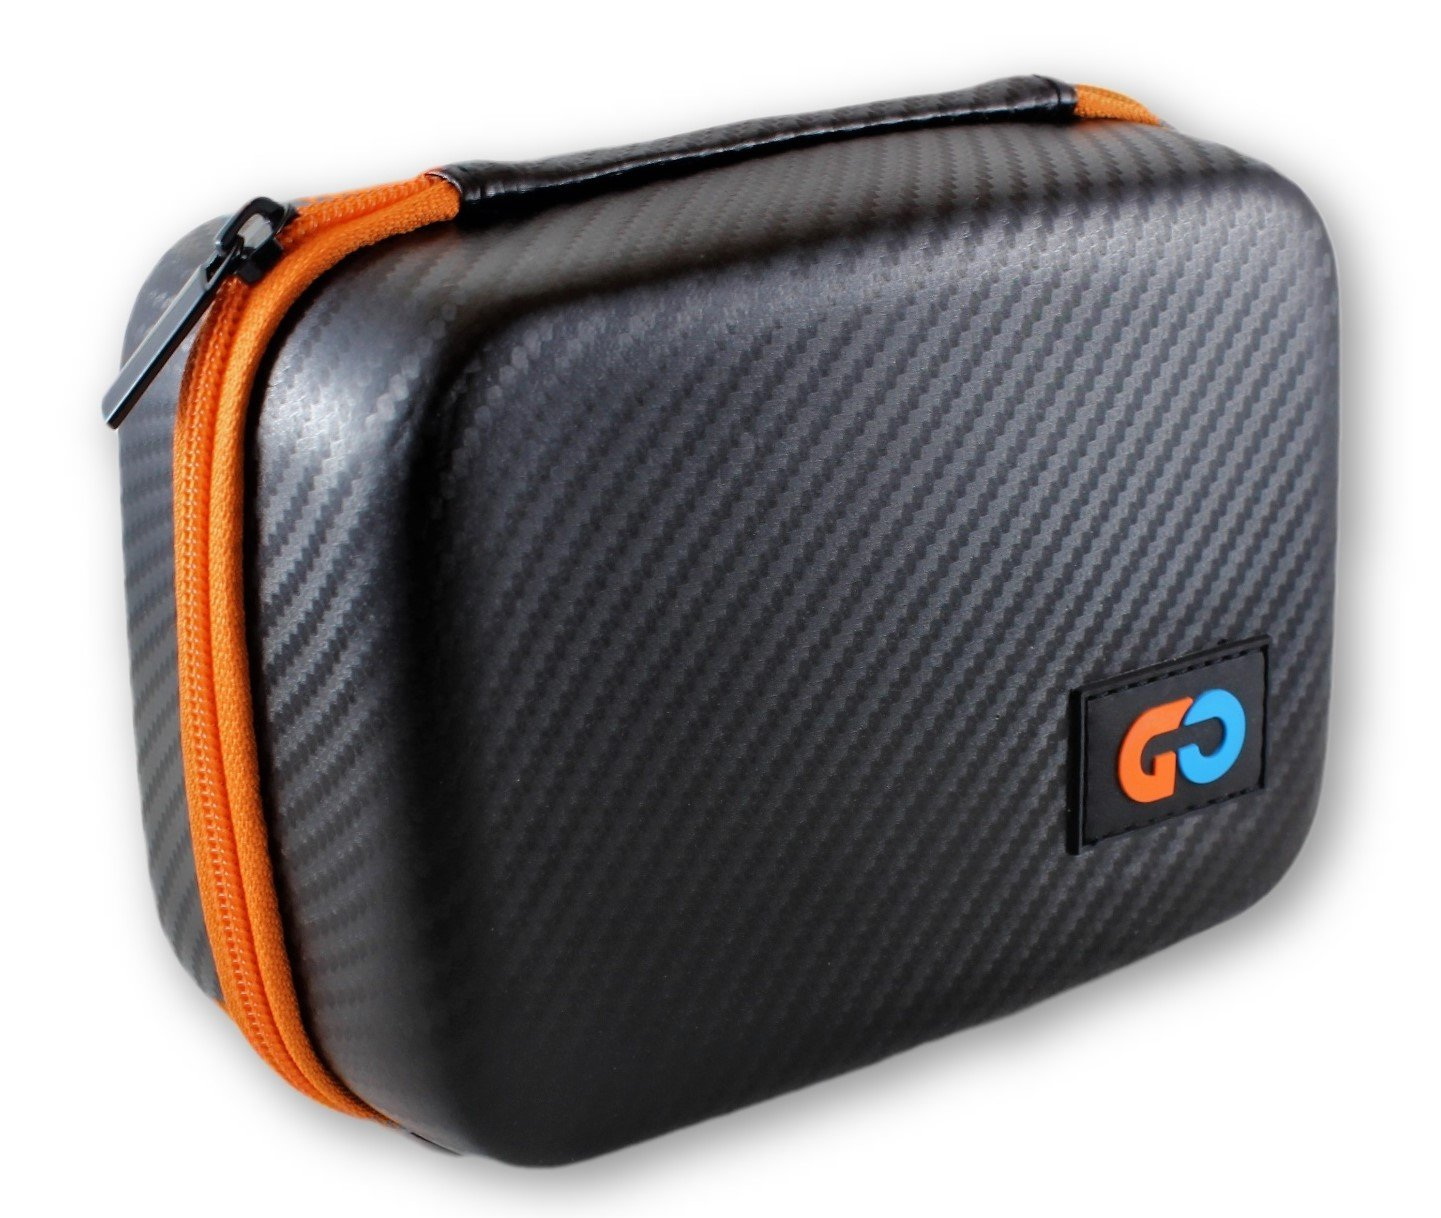 Goodwill Orange - Large Pokemon card holder and carrying case - Fits upto 600 cards(Cards not included)